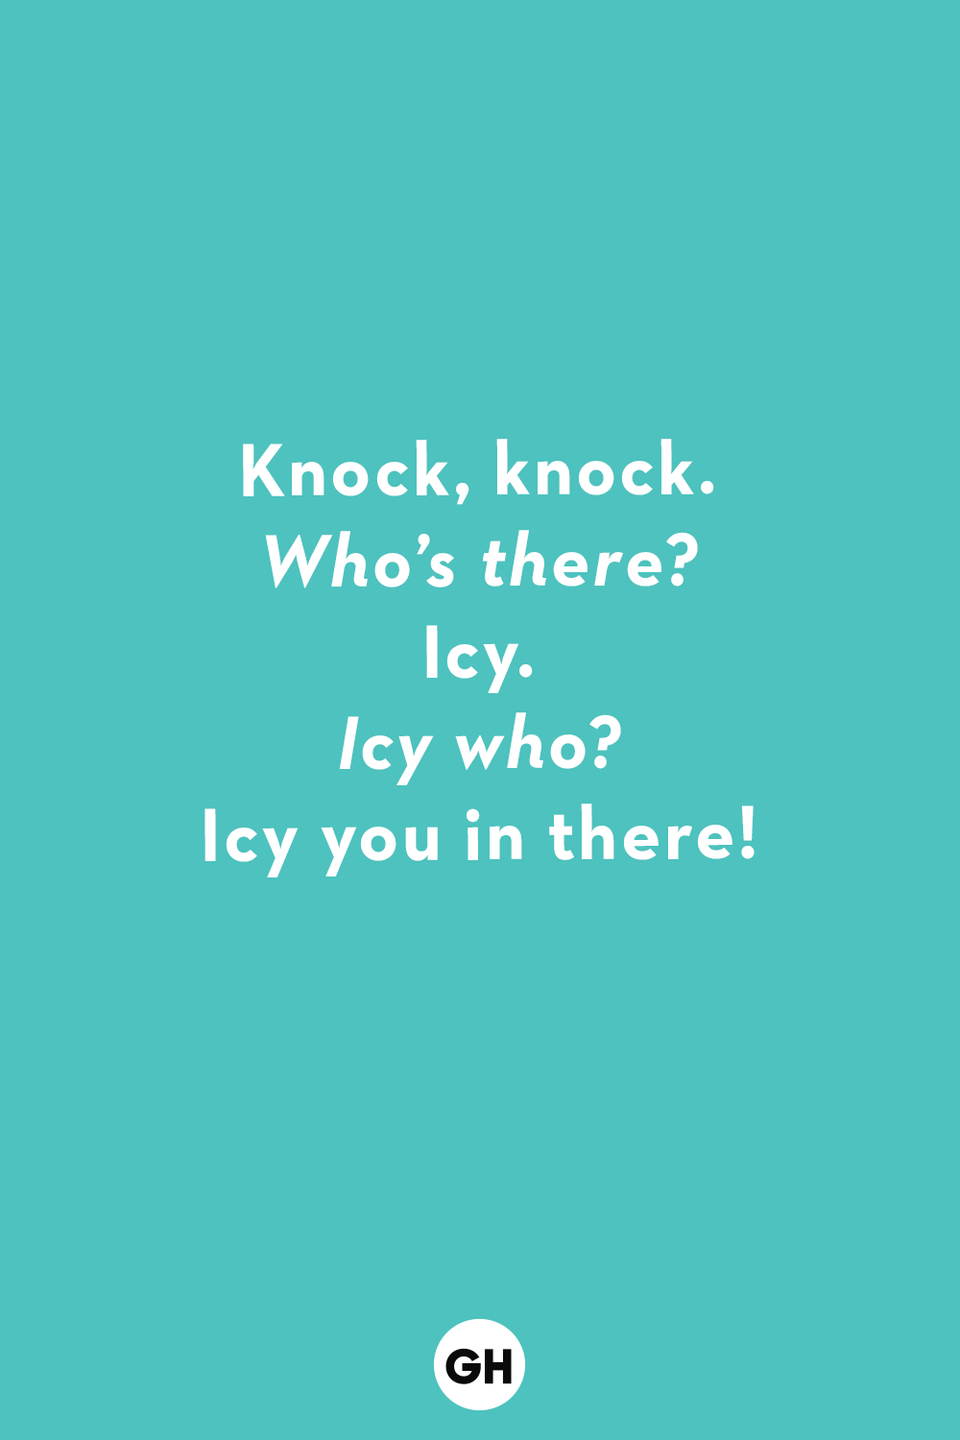 <p><em>Who's there?</em></p><p>Icy.</p><p><em>Icy who?</em></p><p>Icy you in there!</p>